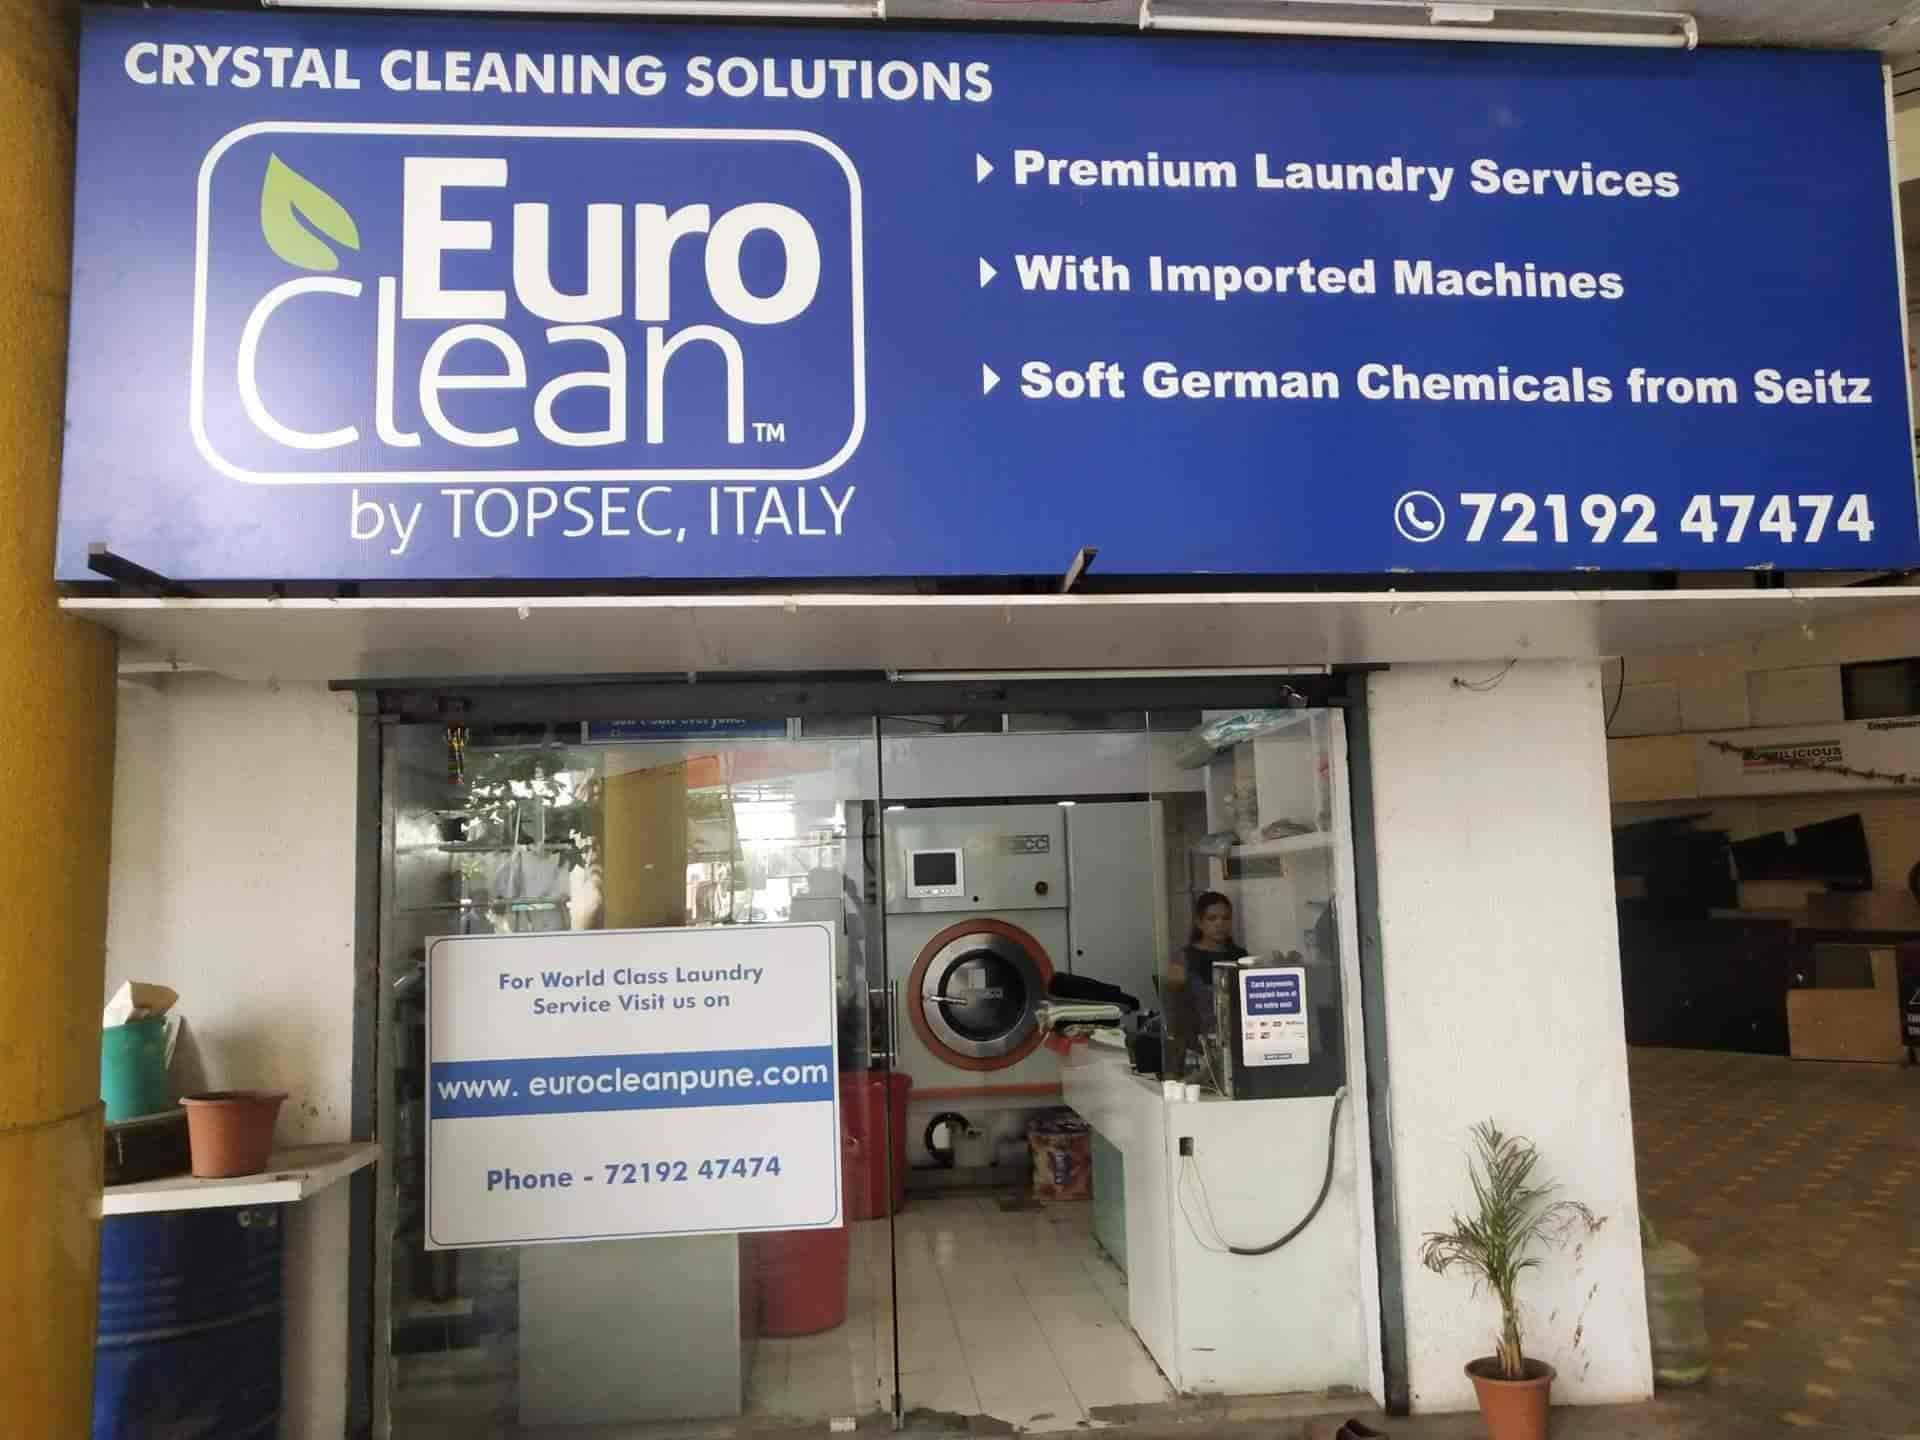 Euro Clean Laundry Services, Baner - Laundry Services in pune - Justdial